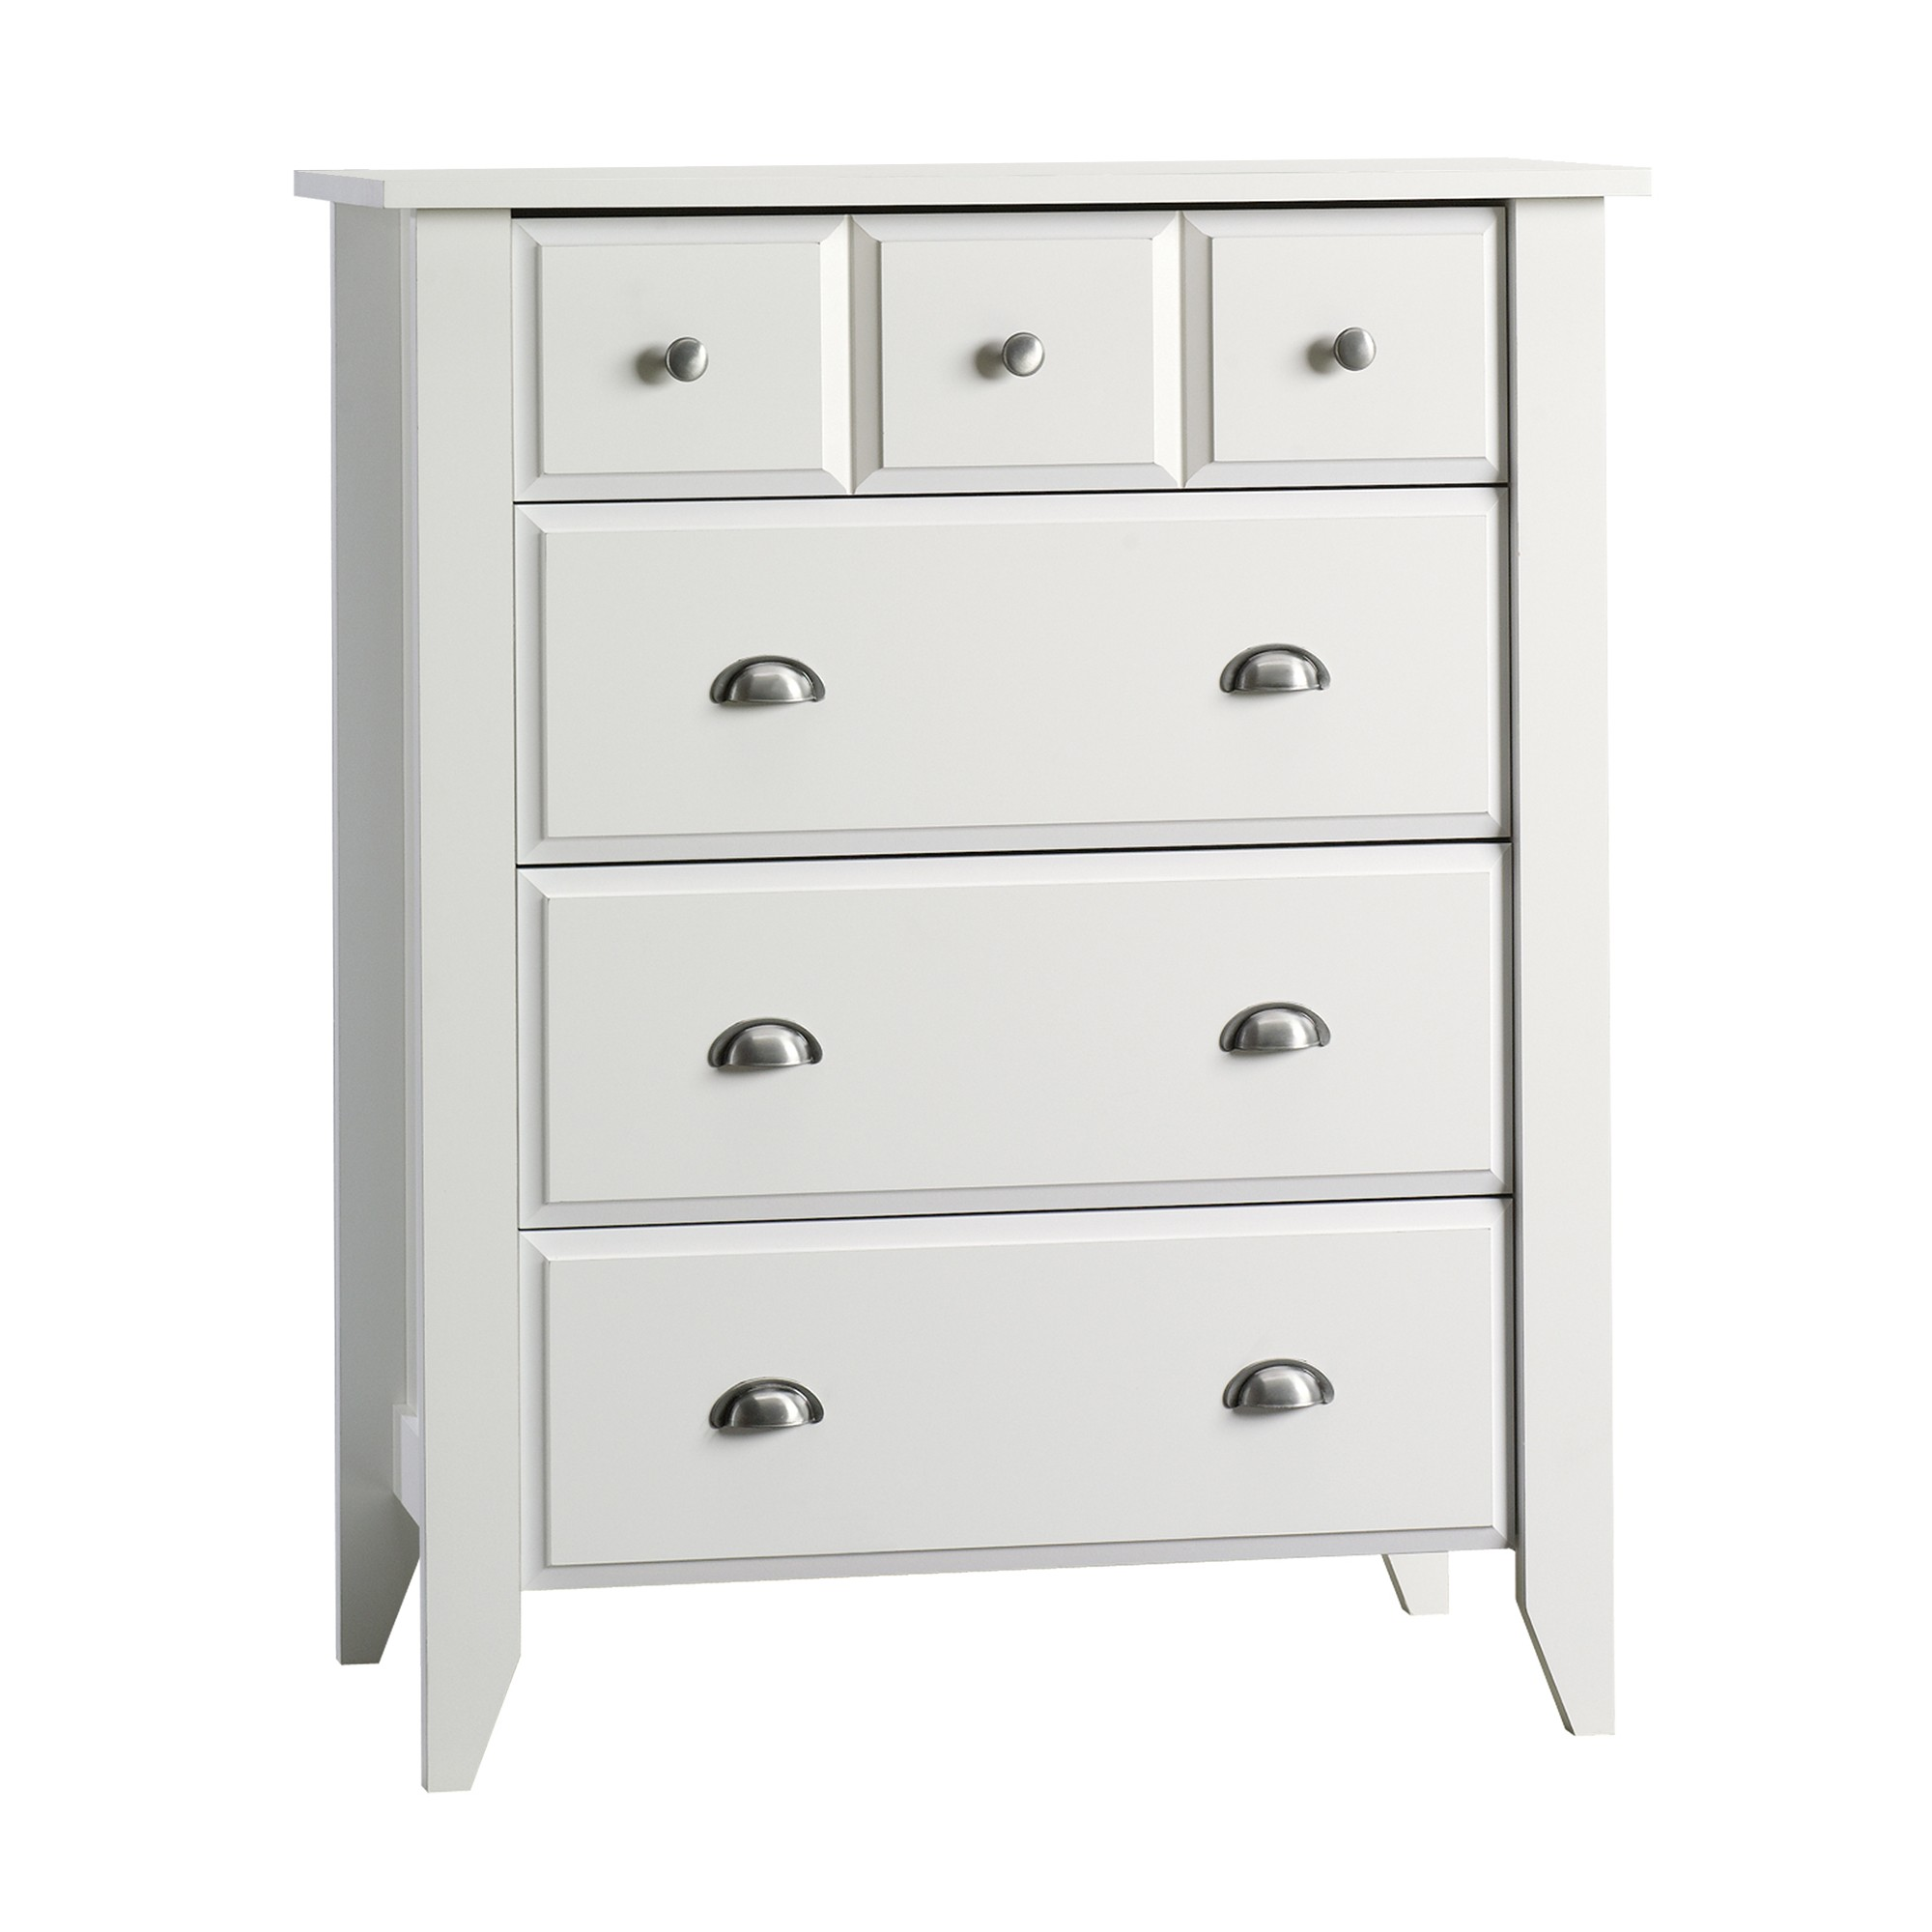 chinoiserie img allen chest drawers four paint ethan drawer design product decorated